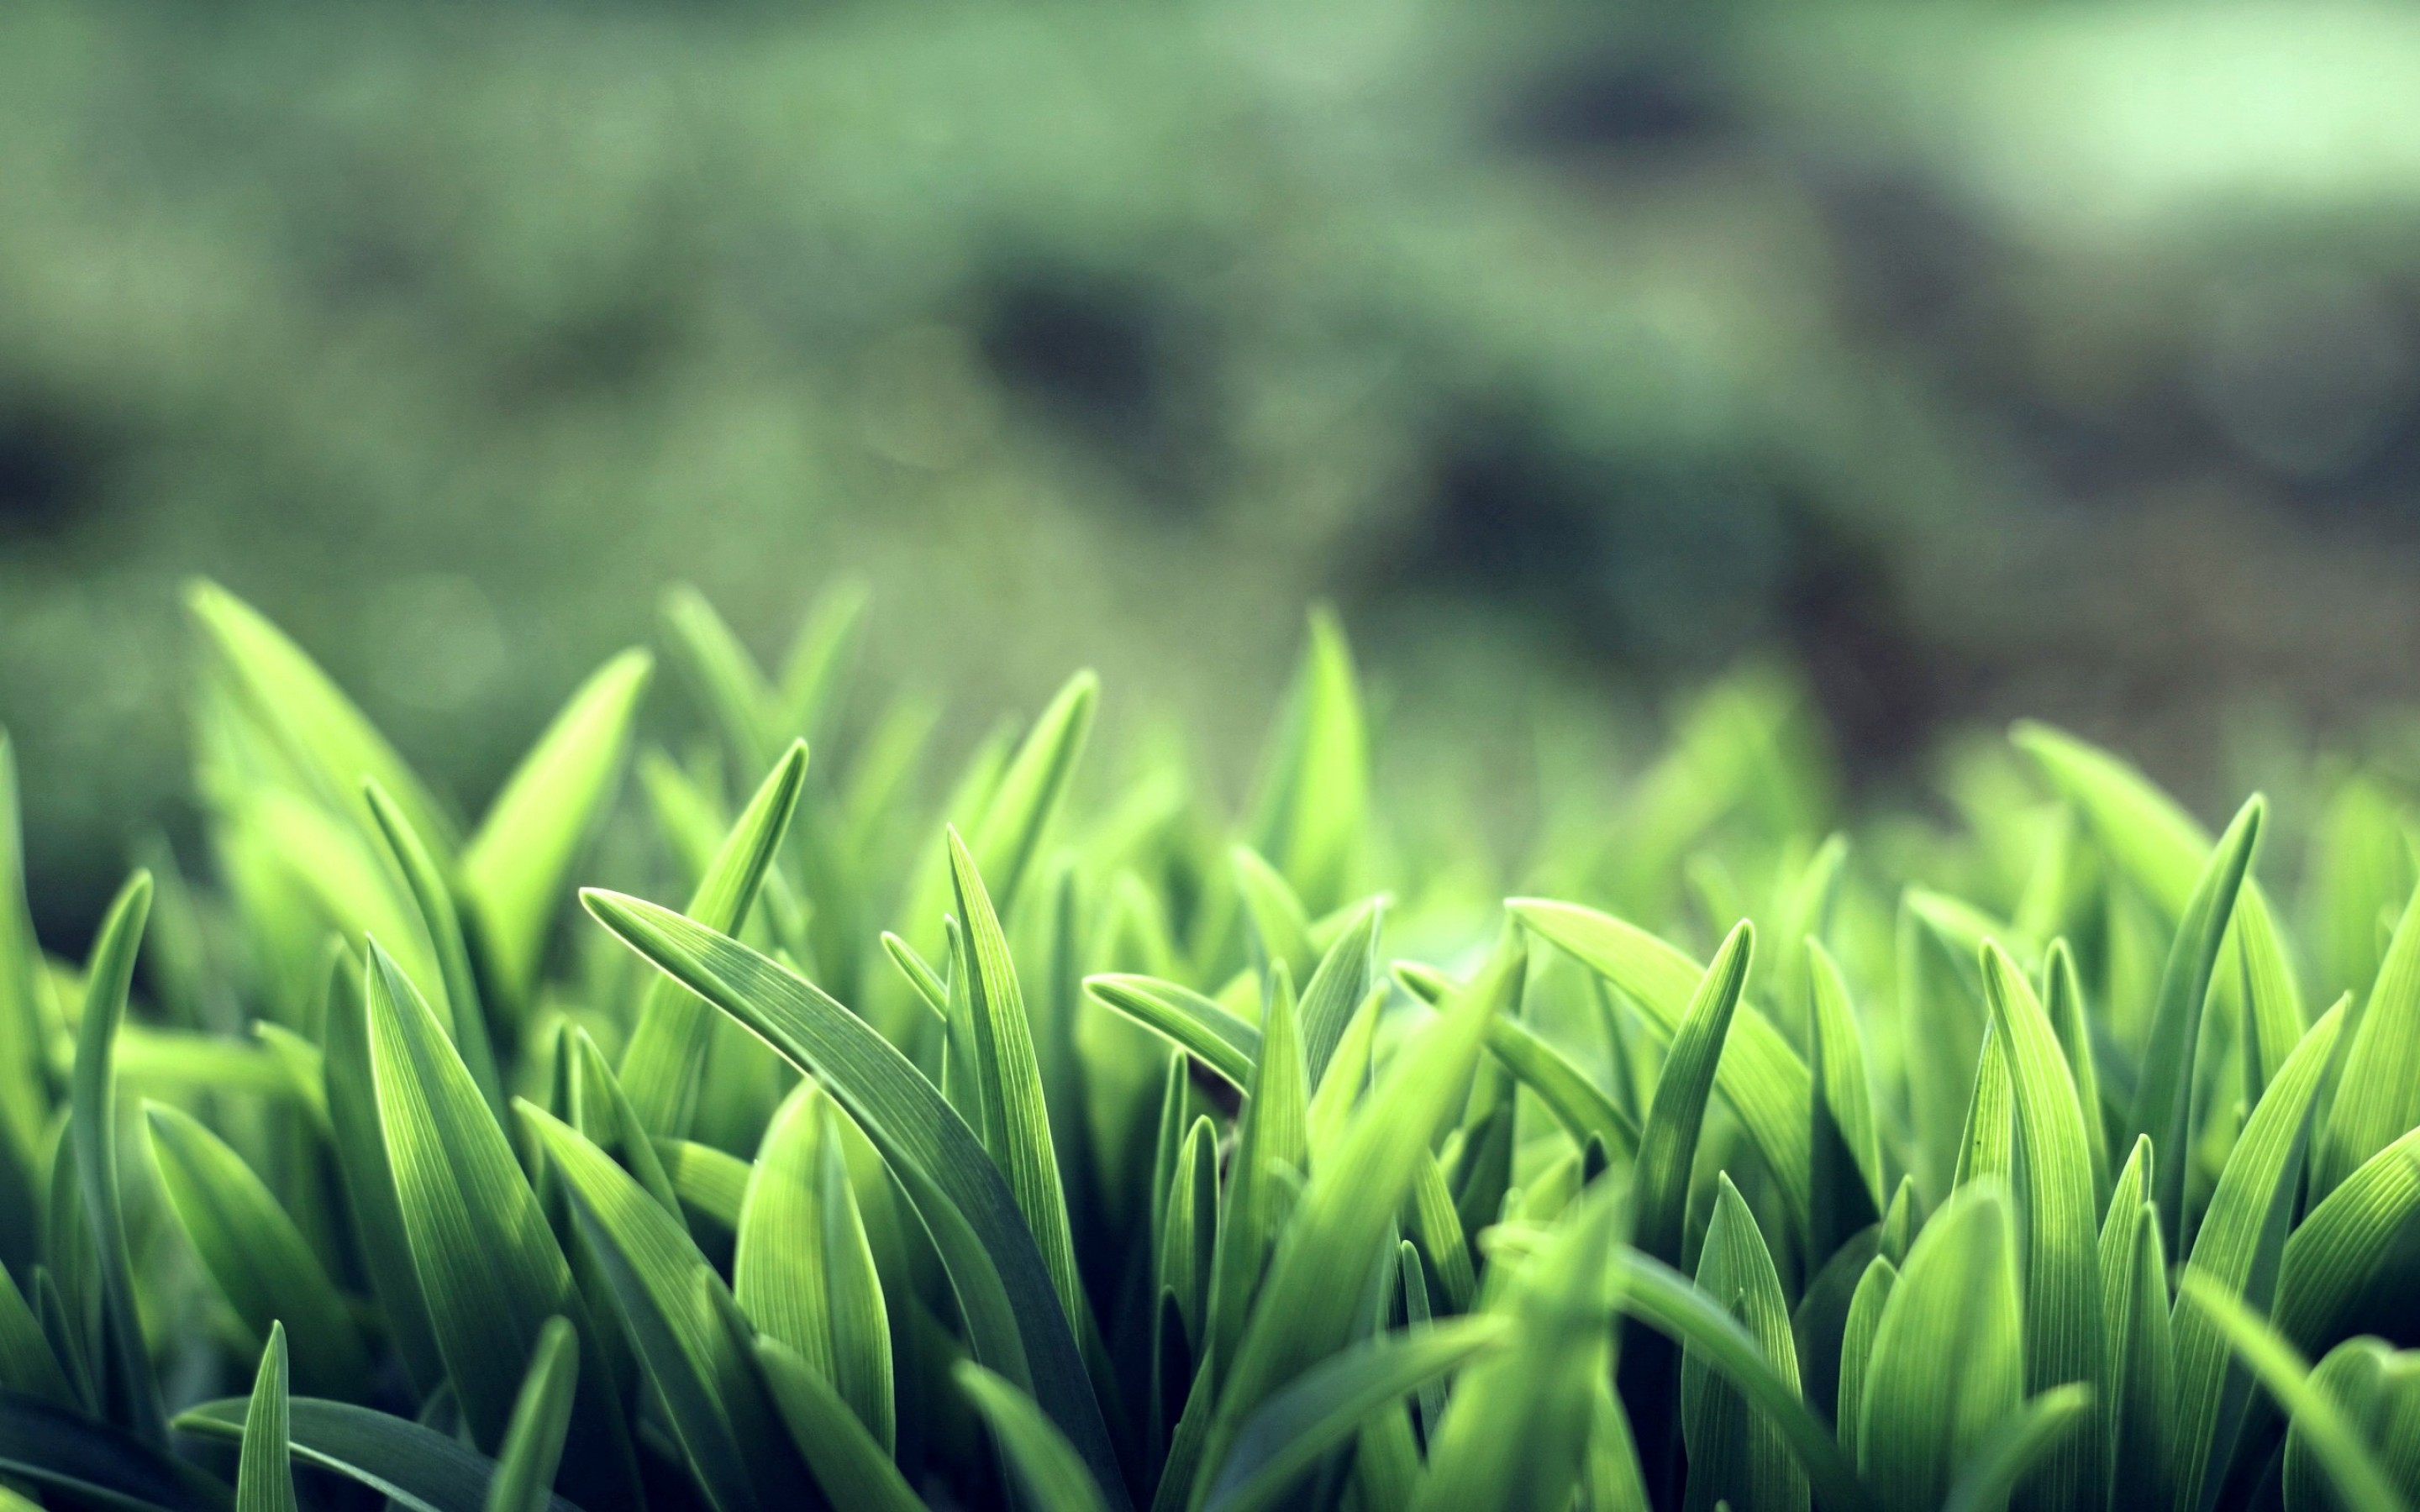 Download Wallpapers Download 2790x2547 Animals Grass: Grass Wallpapers High Quality